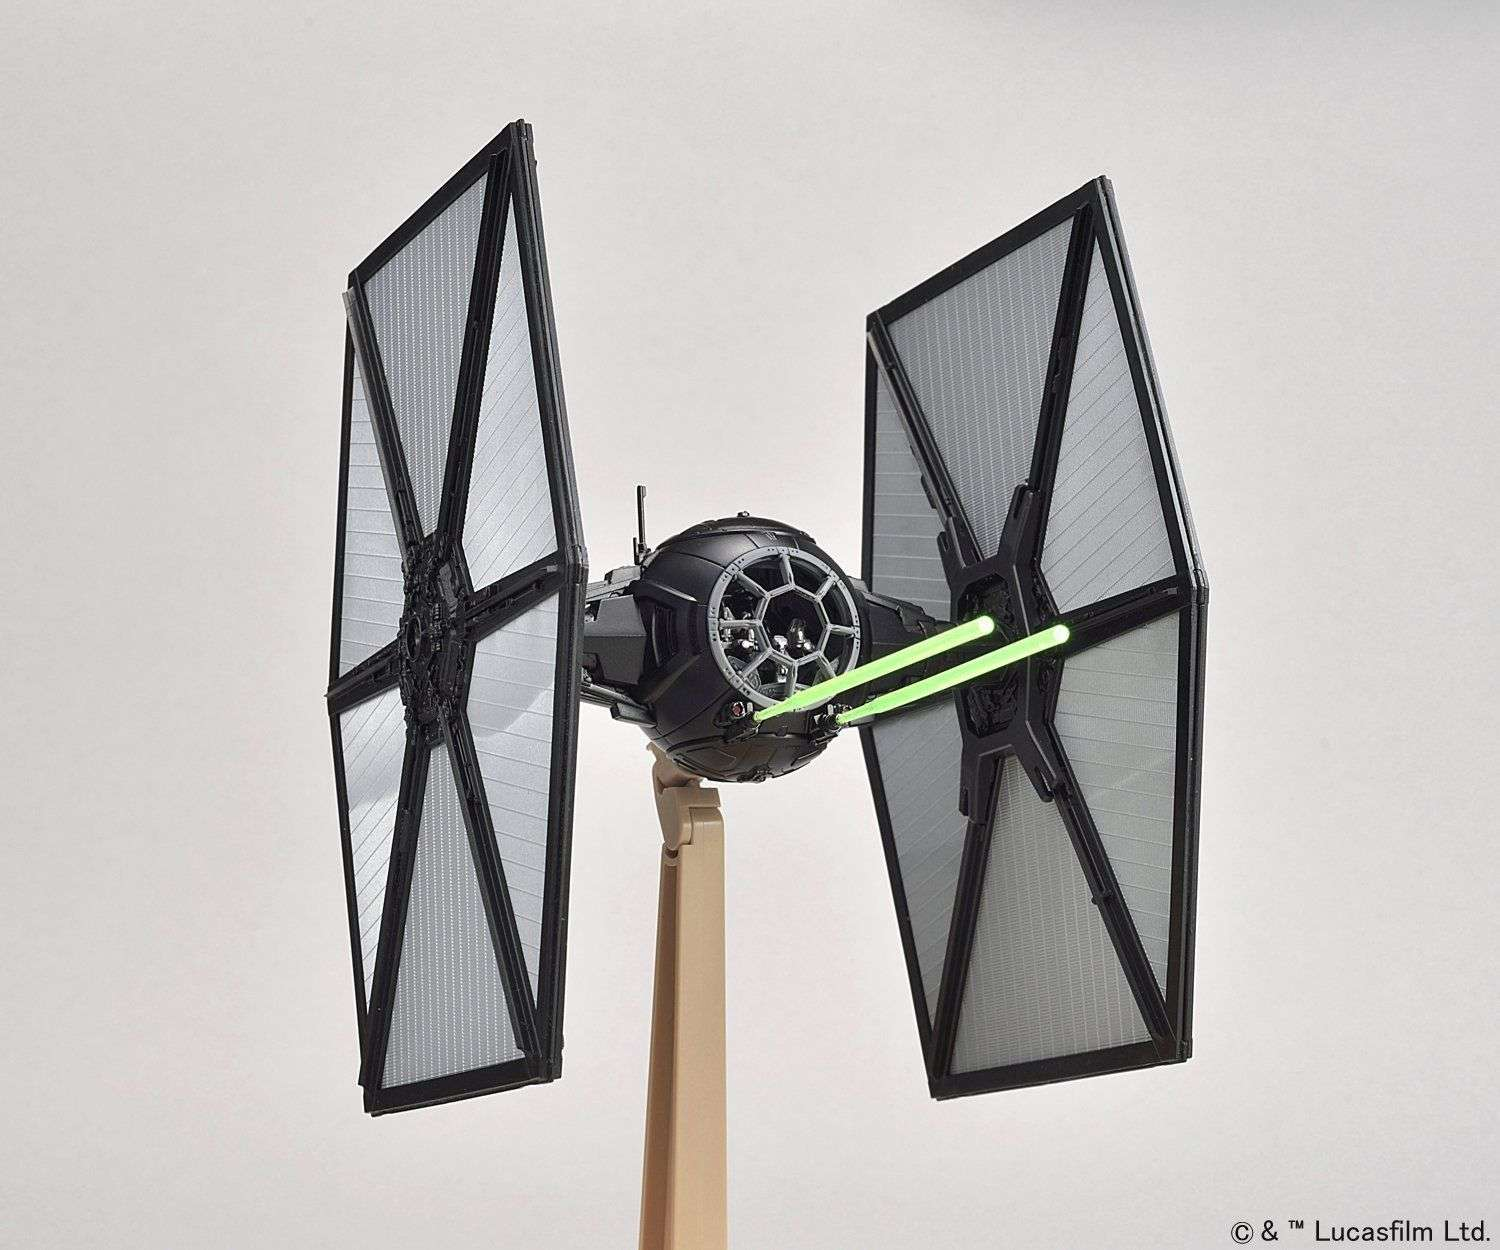 First Order Tie Fighter - Model Kit